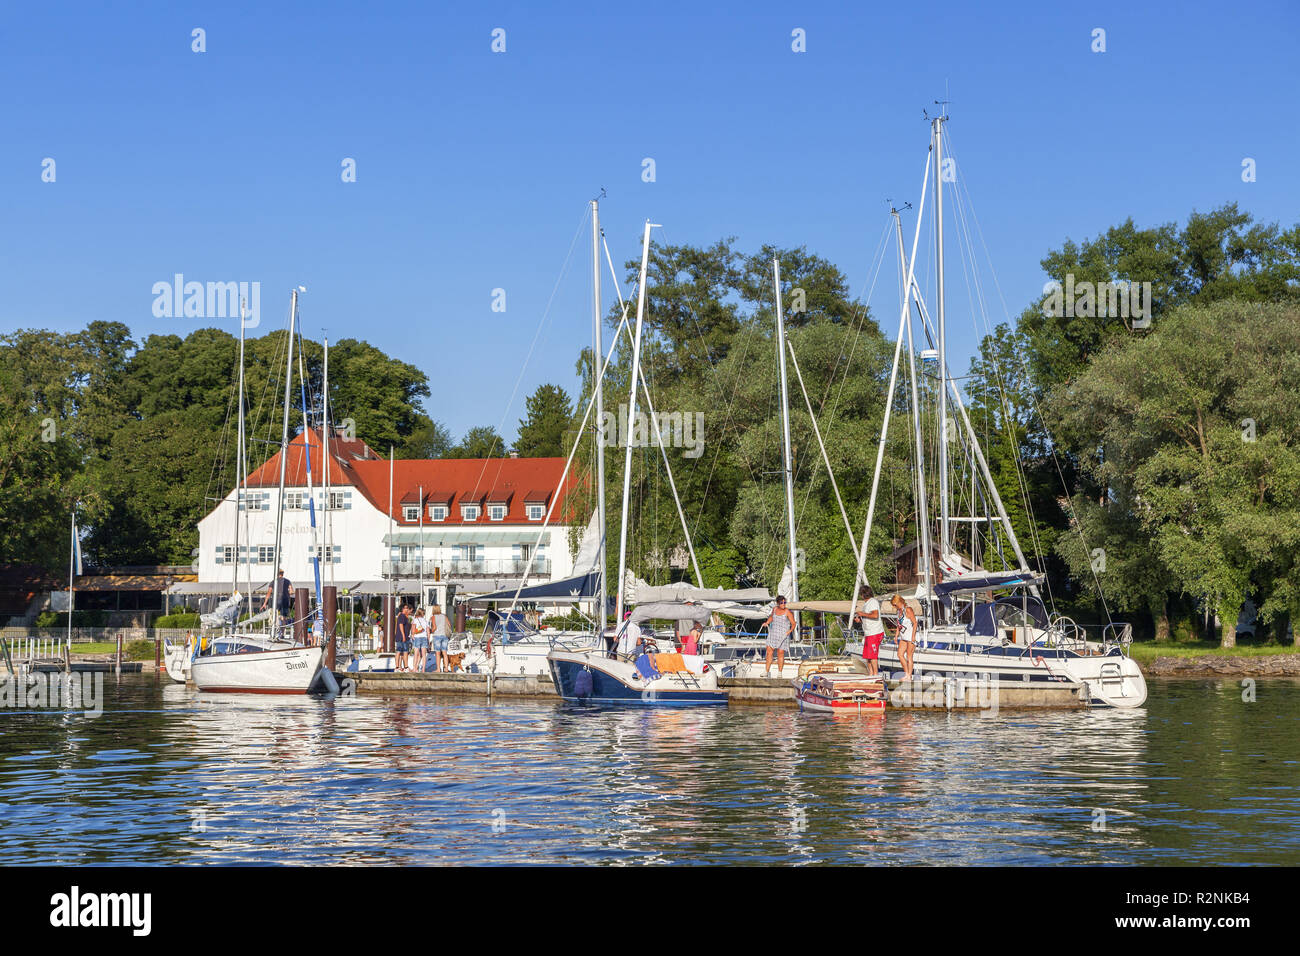 View to the Inselwirt on the Fraueninsel in the Chiemsee, Frauenchiemsee, Chiemgau, Upper Bavaria, Bavaria, southern Germany, Germany, Europe Stock Photo